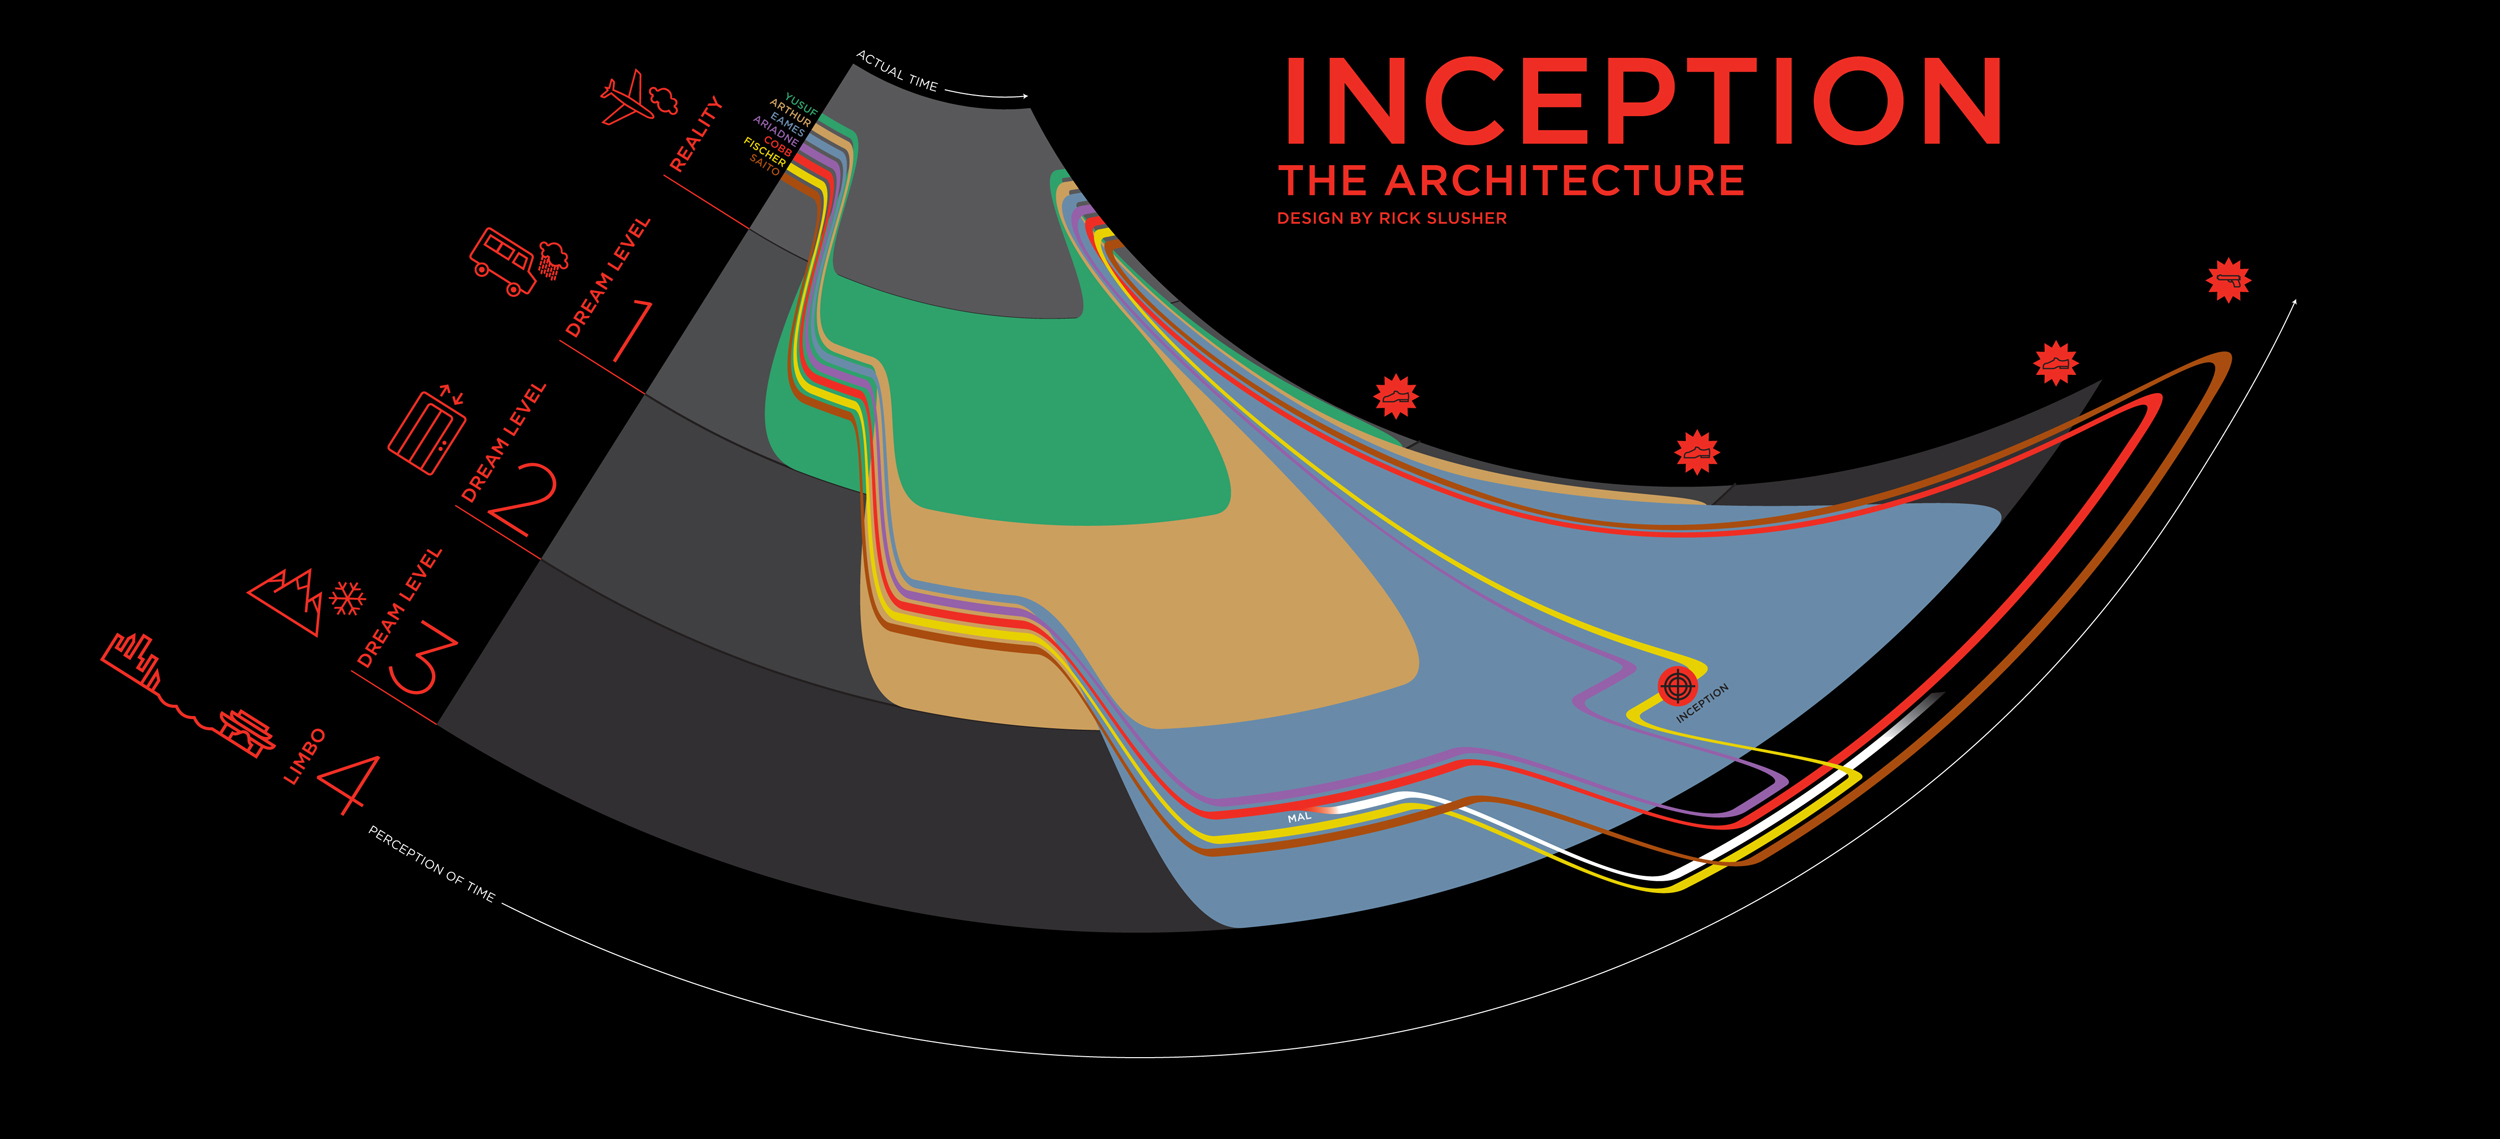 Inception narrative visualisation